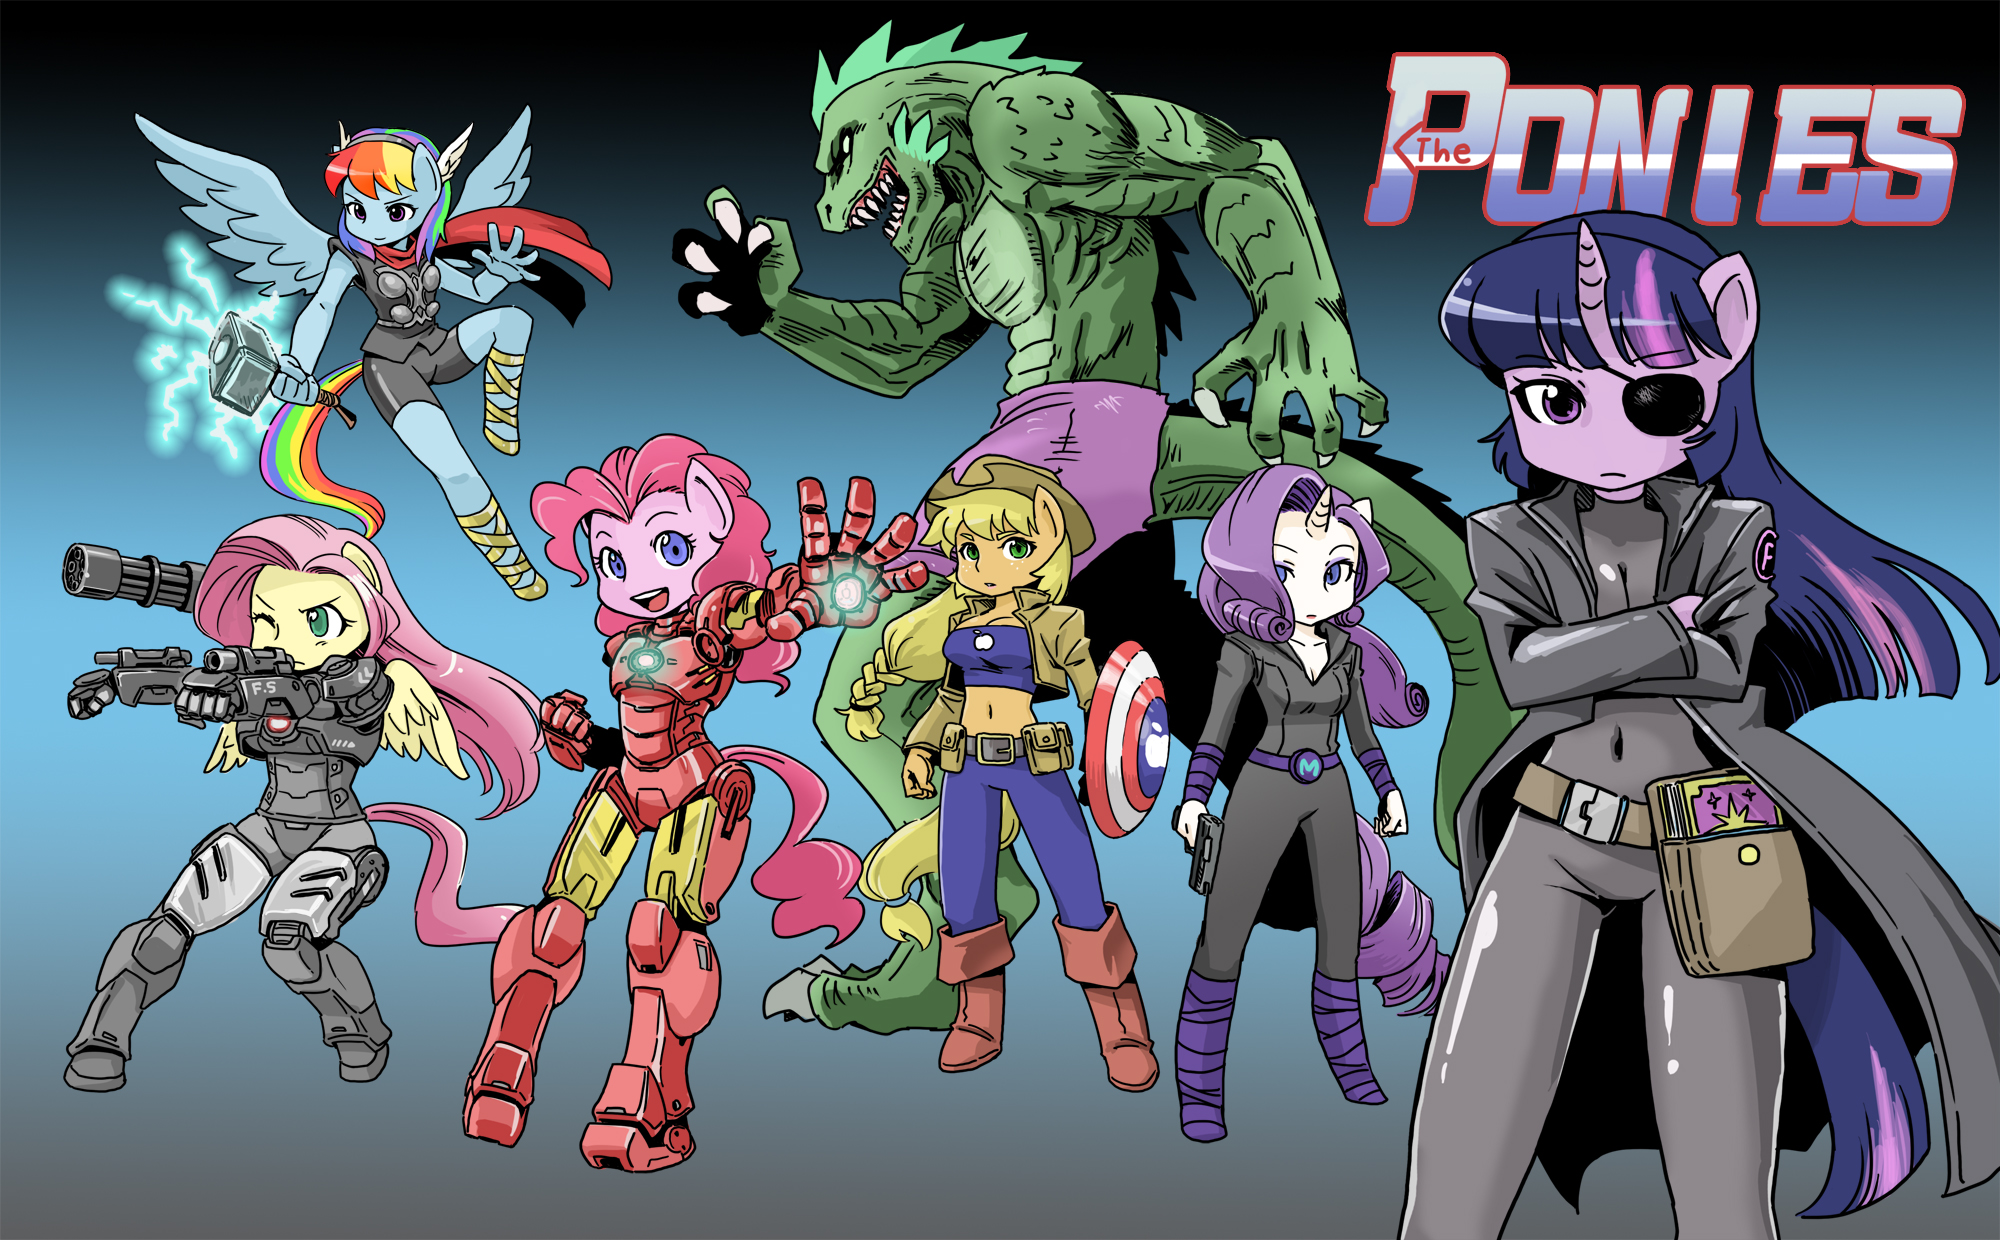 The PONIES by shepherd0821